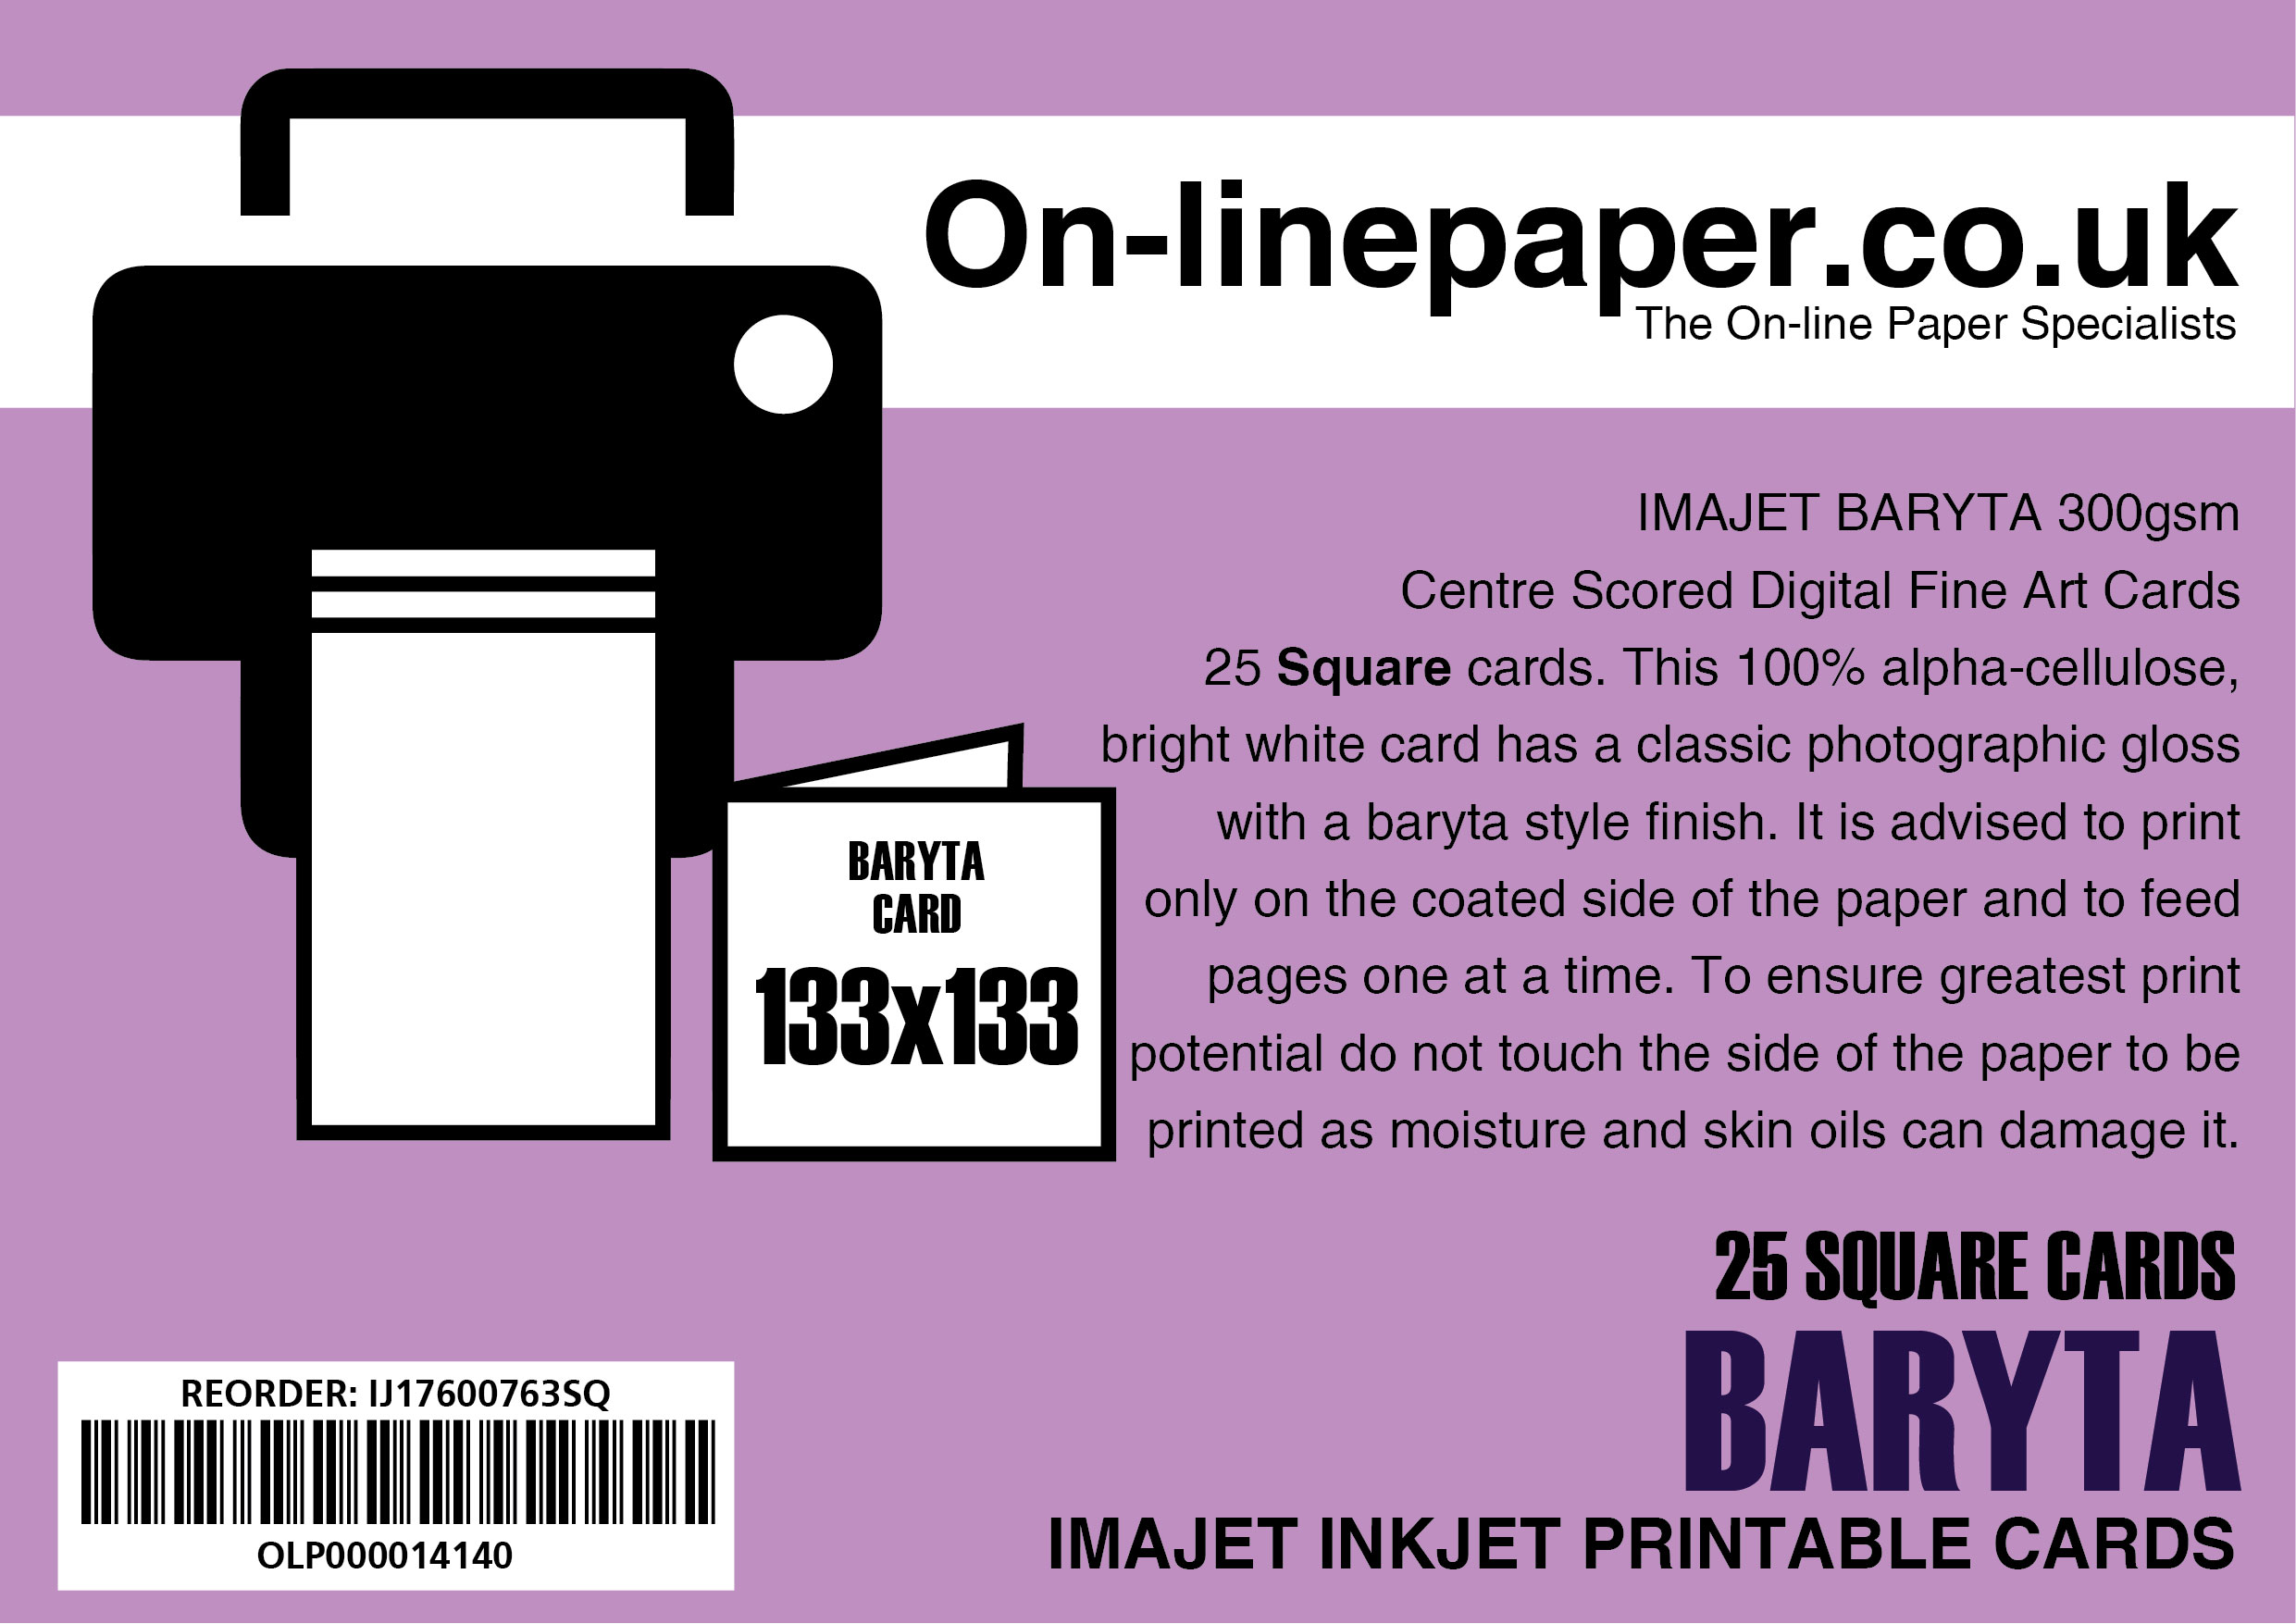 IMAJET BARYTA 300gsm Centre Scored Digital Fine Art Cards 25 x SQUARE 133x133